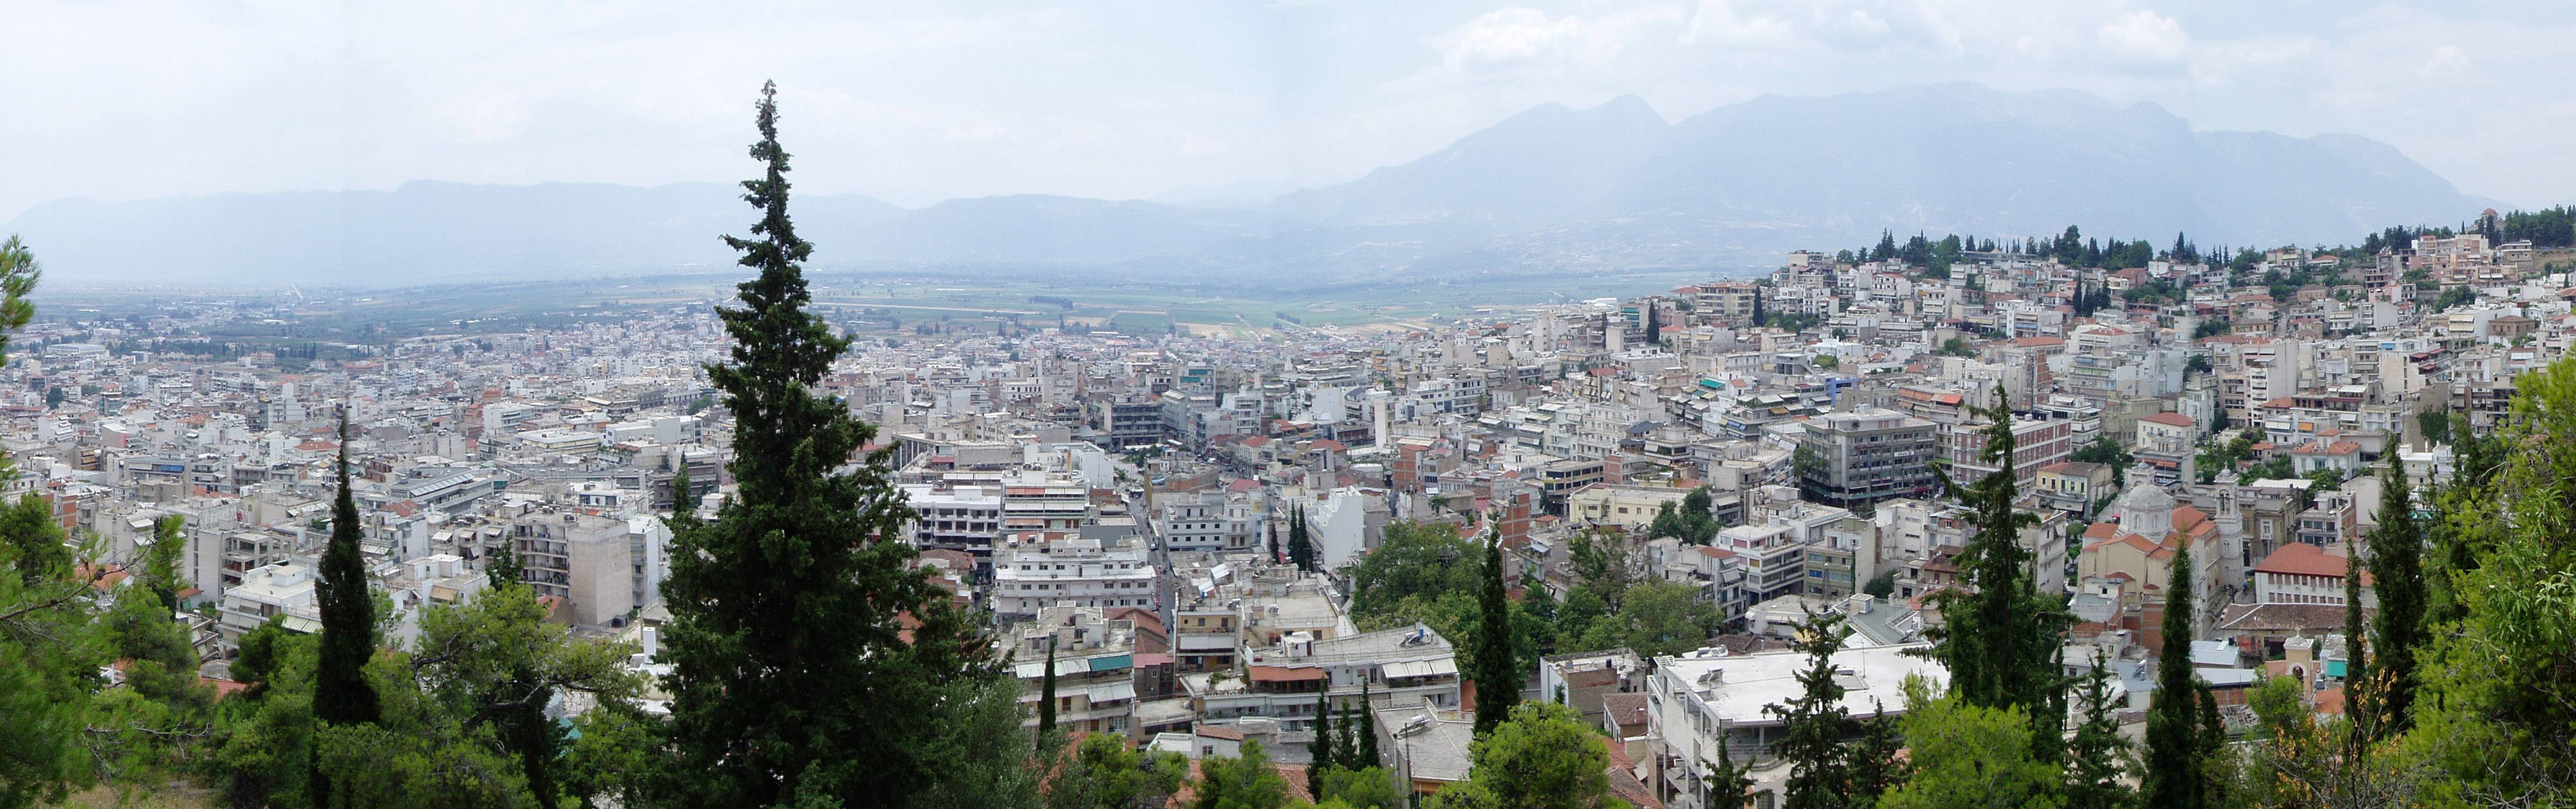 Lamia, Greece - Monterrasol small group tours to Lamia, Greece. Travel agency offers small group car tours to see Lamia in Greece. Order small group tour to Lamia with departure date on request.